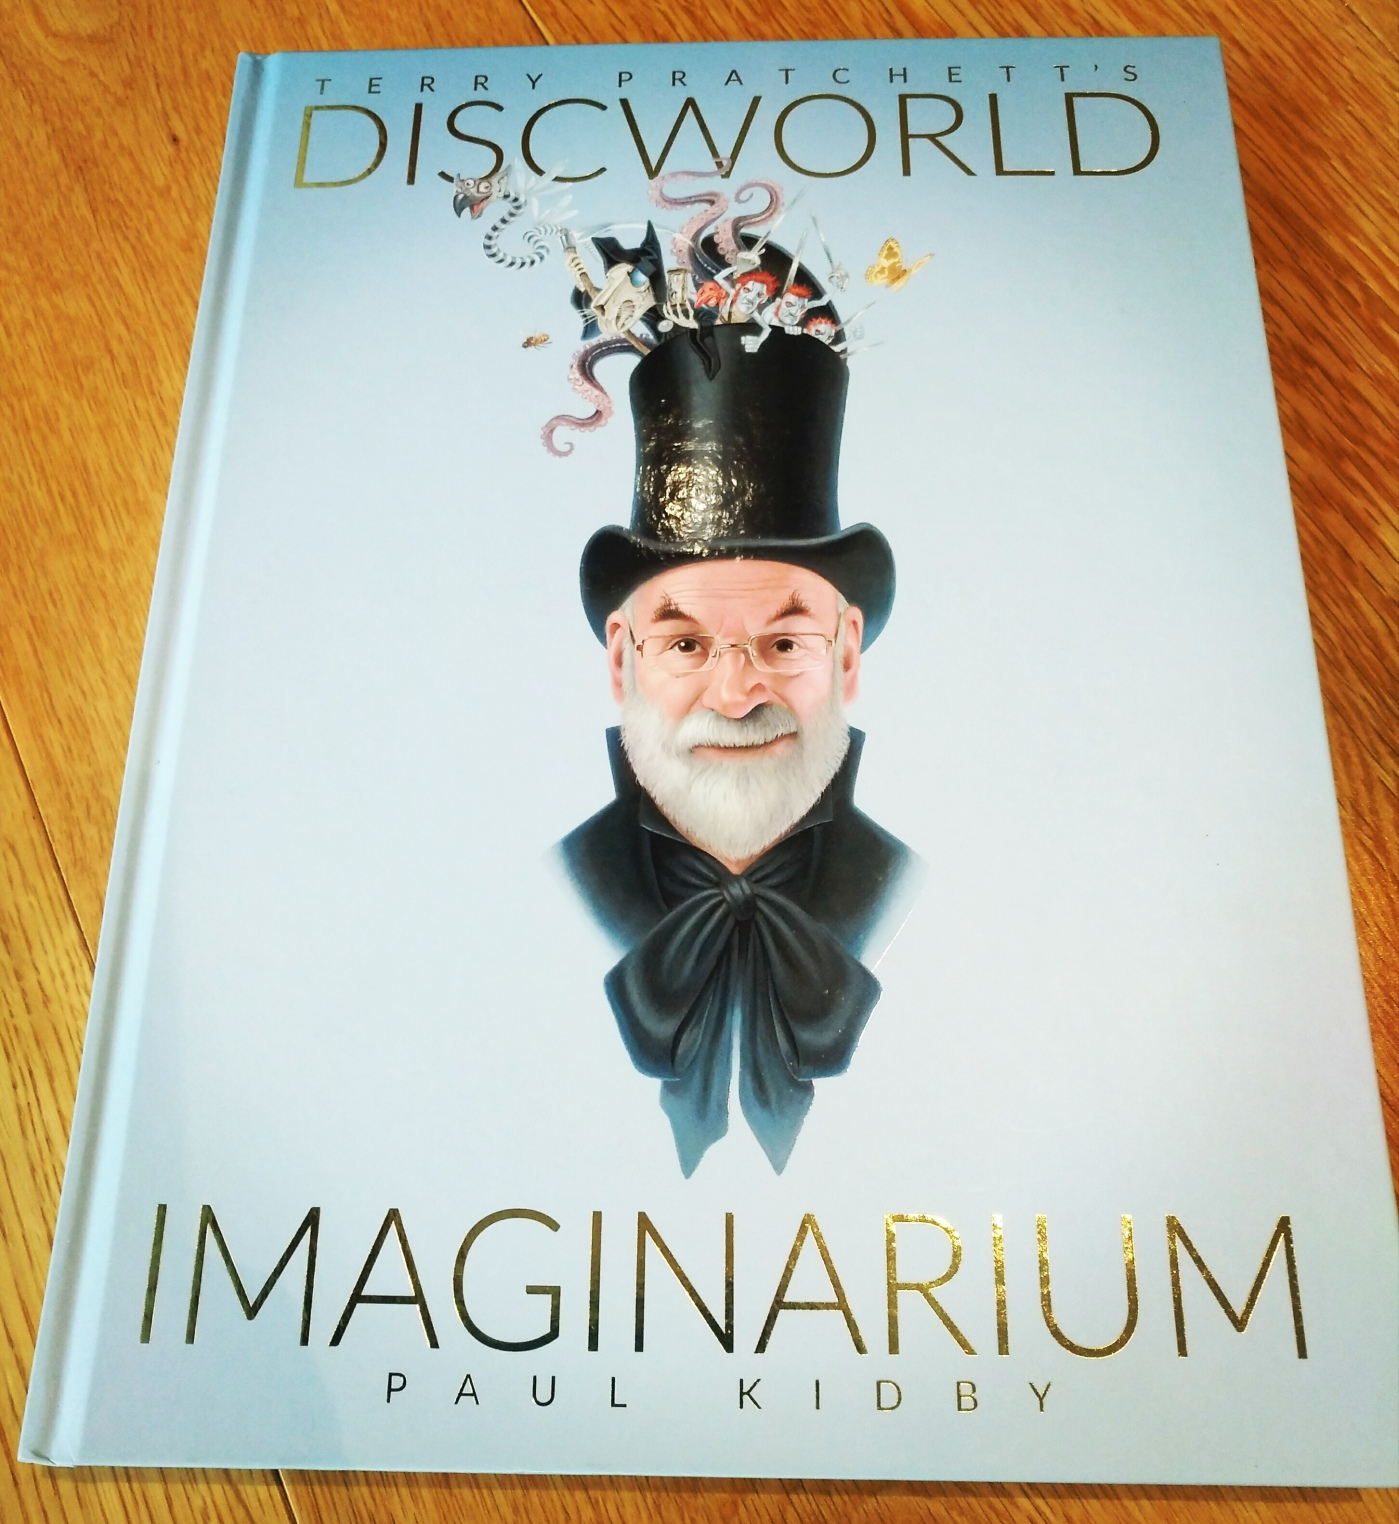 Discworld Imaginarium by Terry Pratchett and Paul Kidby